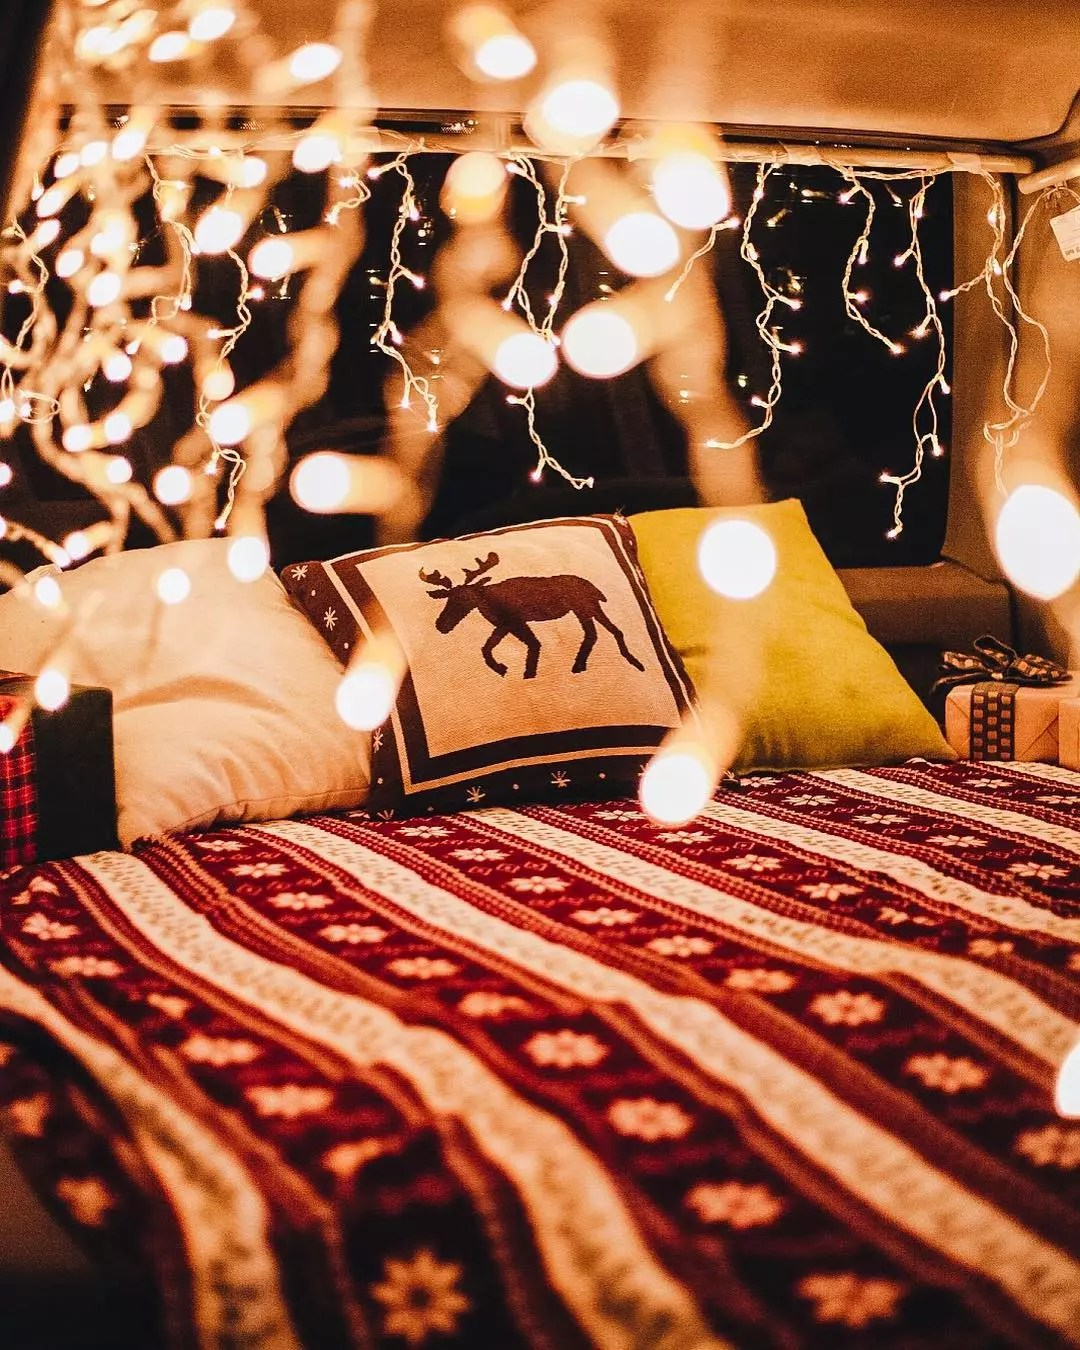 White twinkle lights in the back of van with bed and pillows